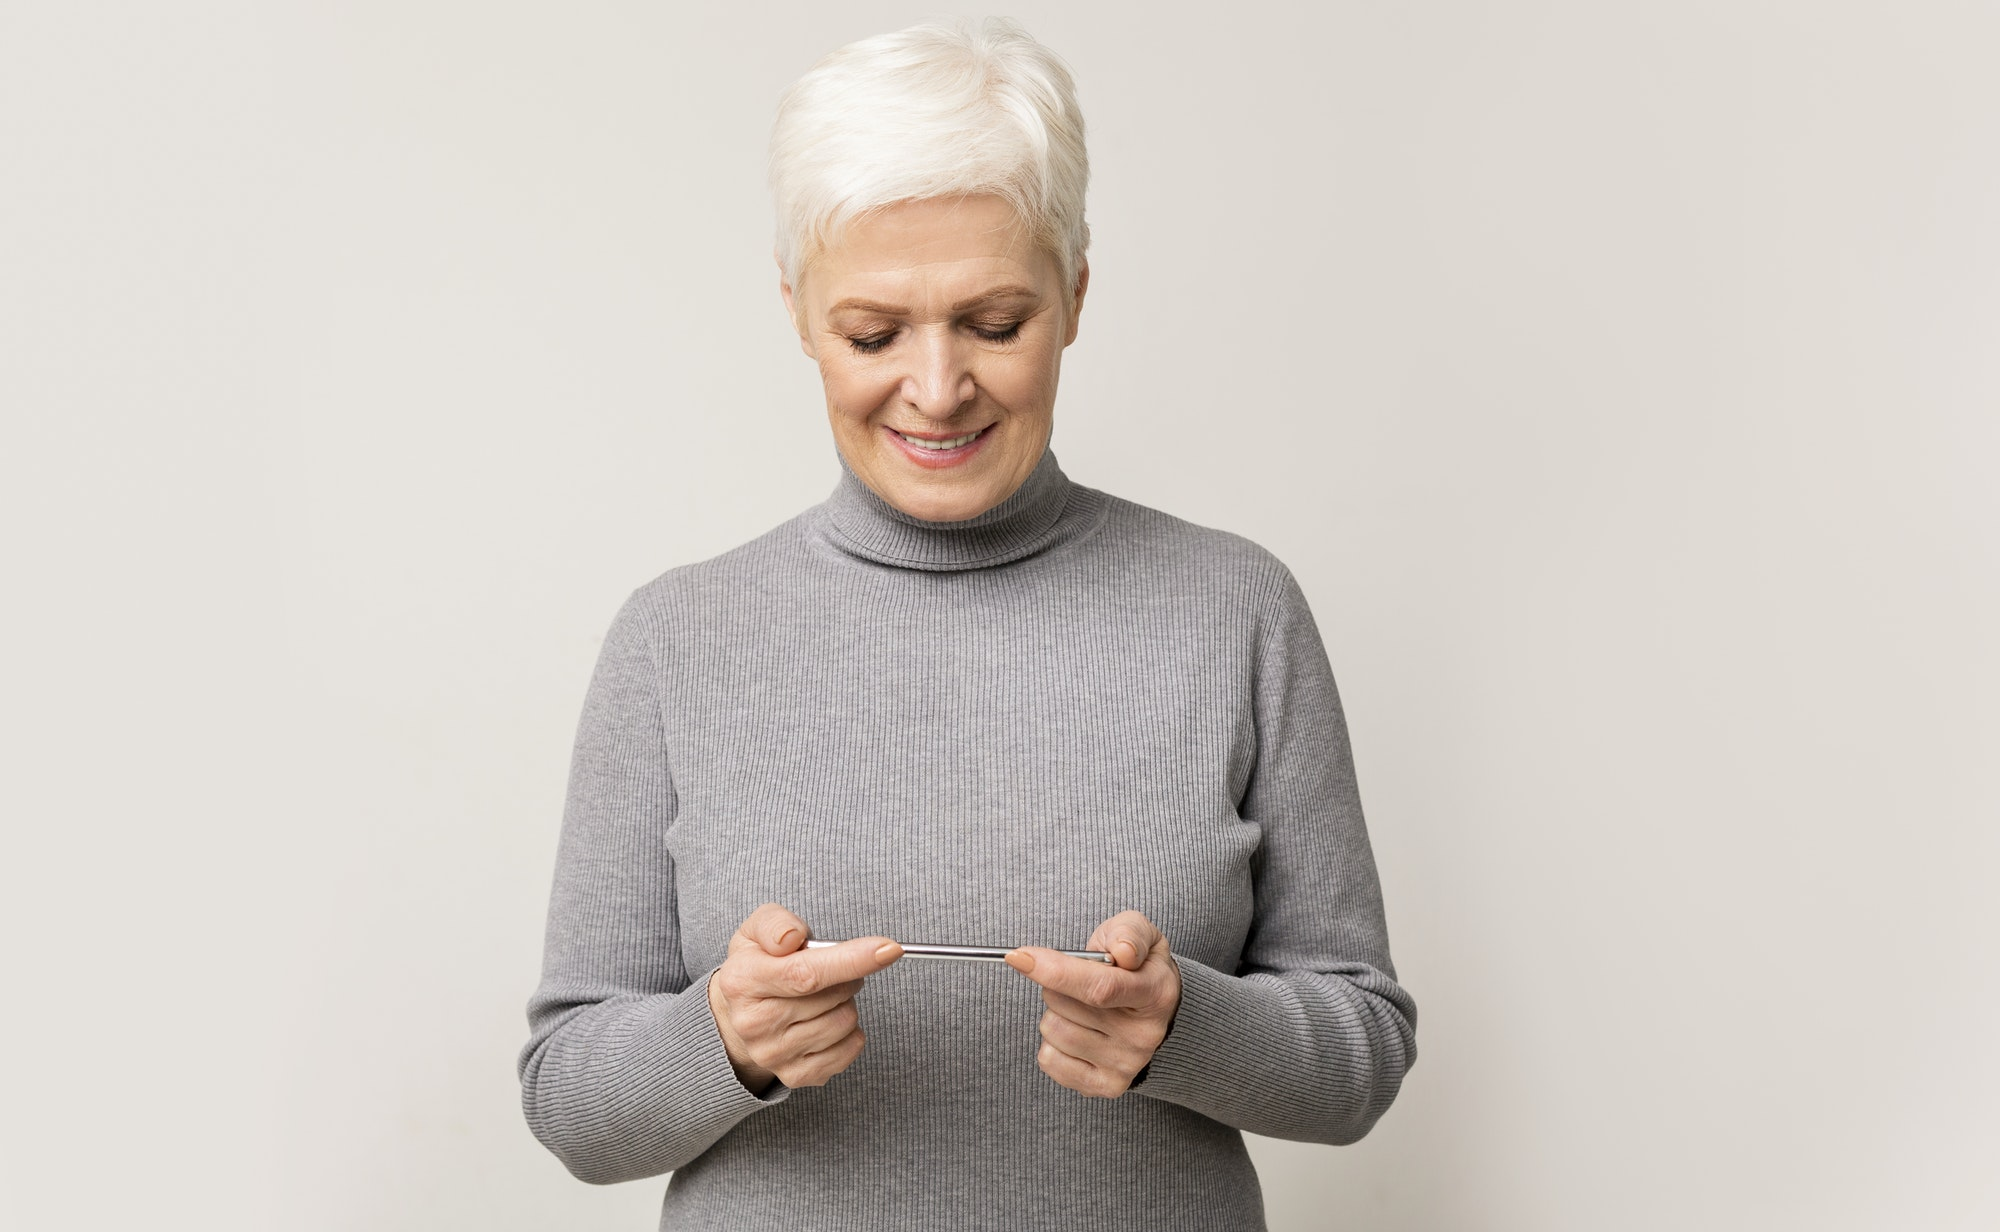 Senior woman playing video game on mobile phone and smiling